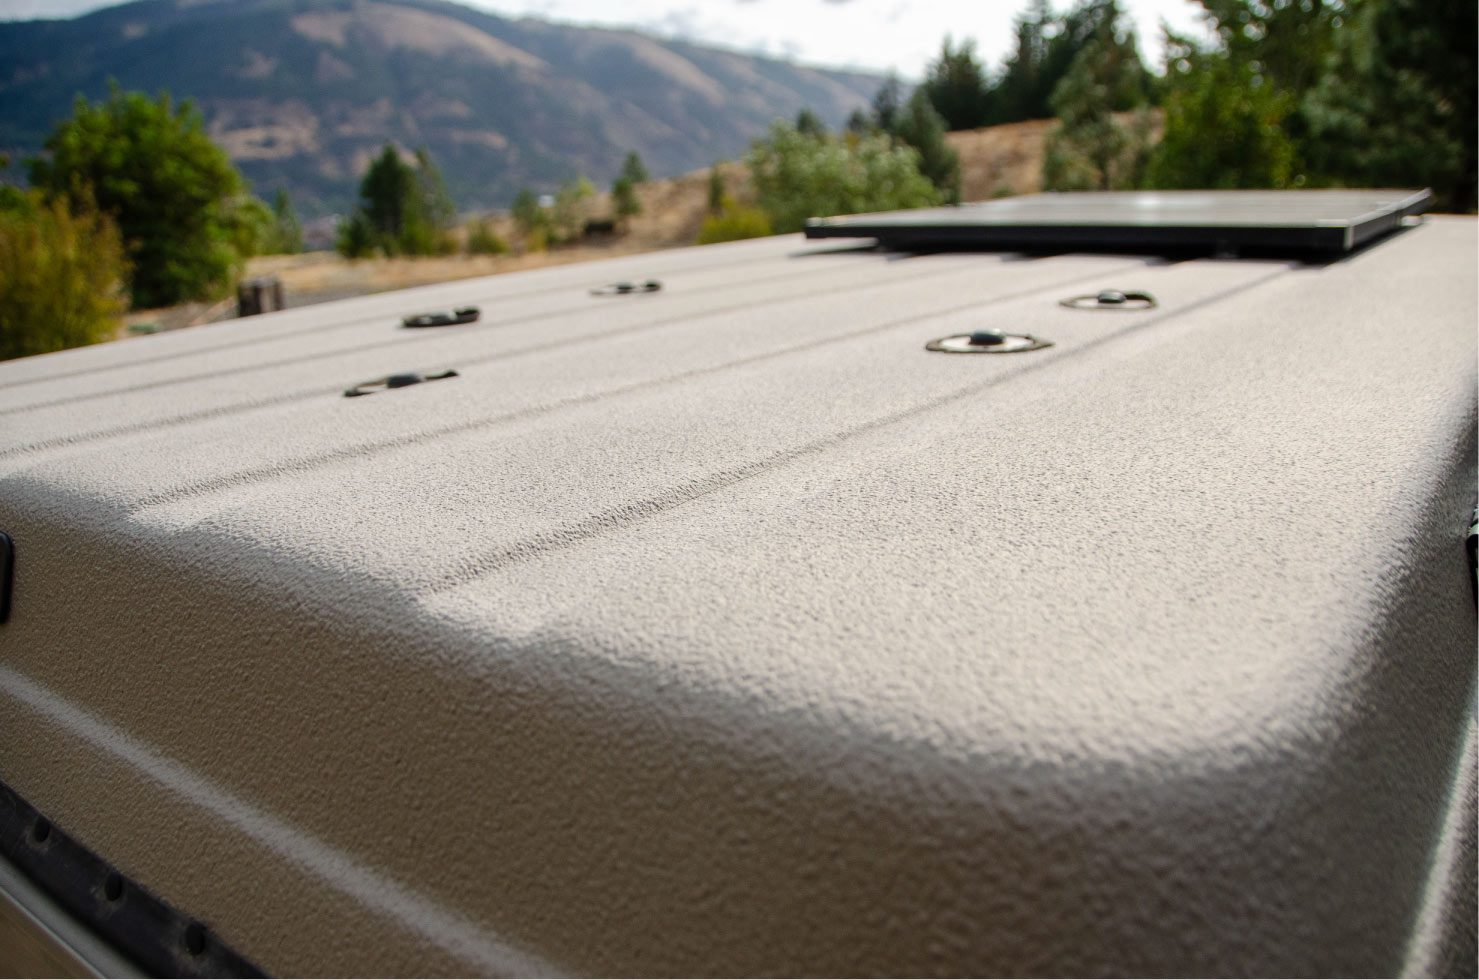 Roof of a 4wd Sportsmobile penthouse with windows that open with screens Ford E-Series 4x4 Econoline Sportsmobile RB50 Layout Campervan conversion for sale built by Van Specialties with Aluminess accessories